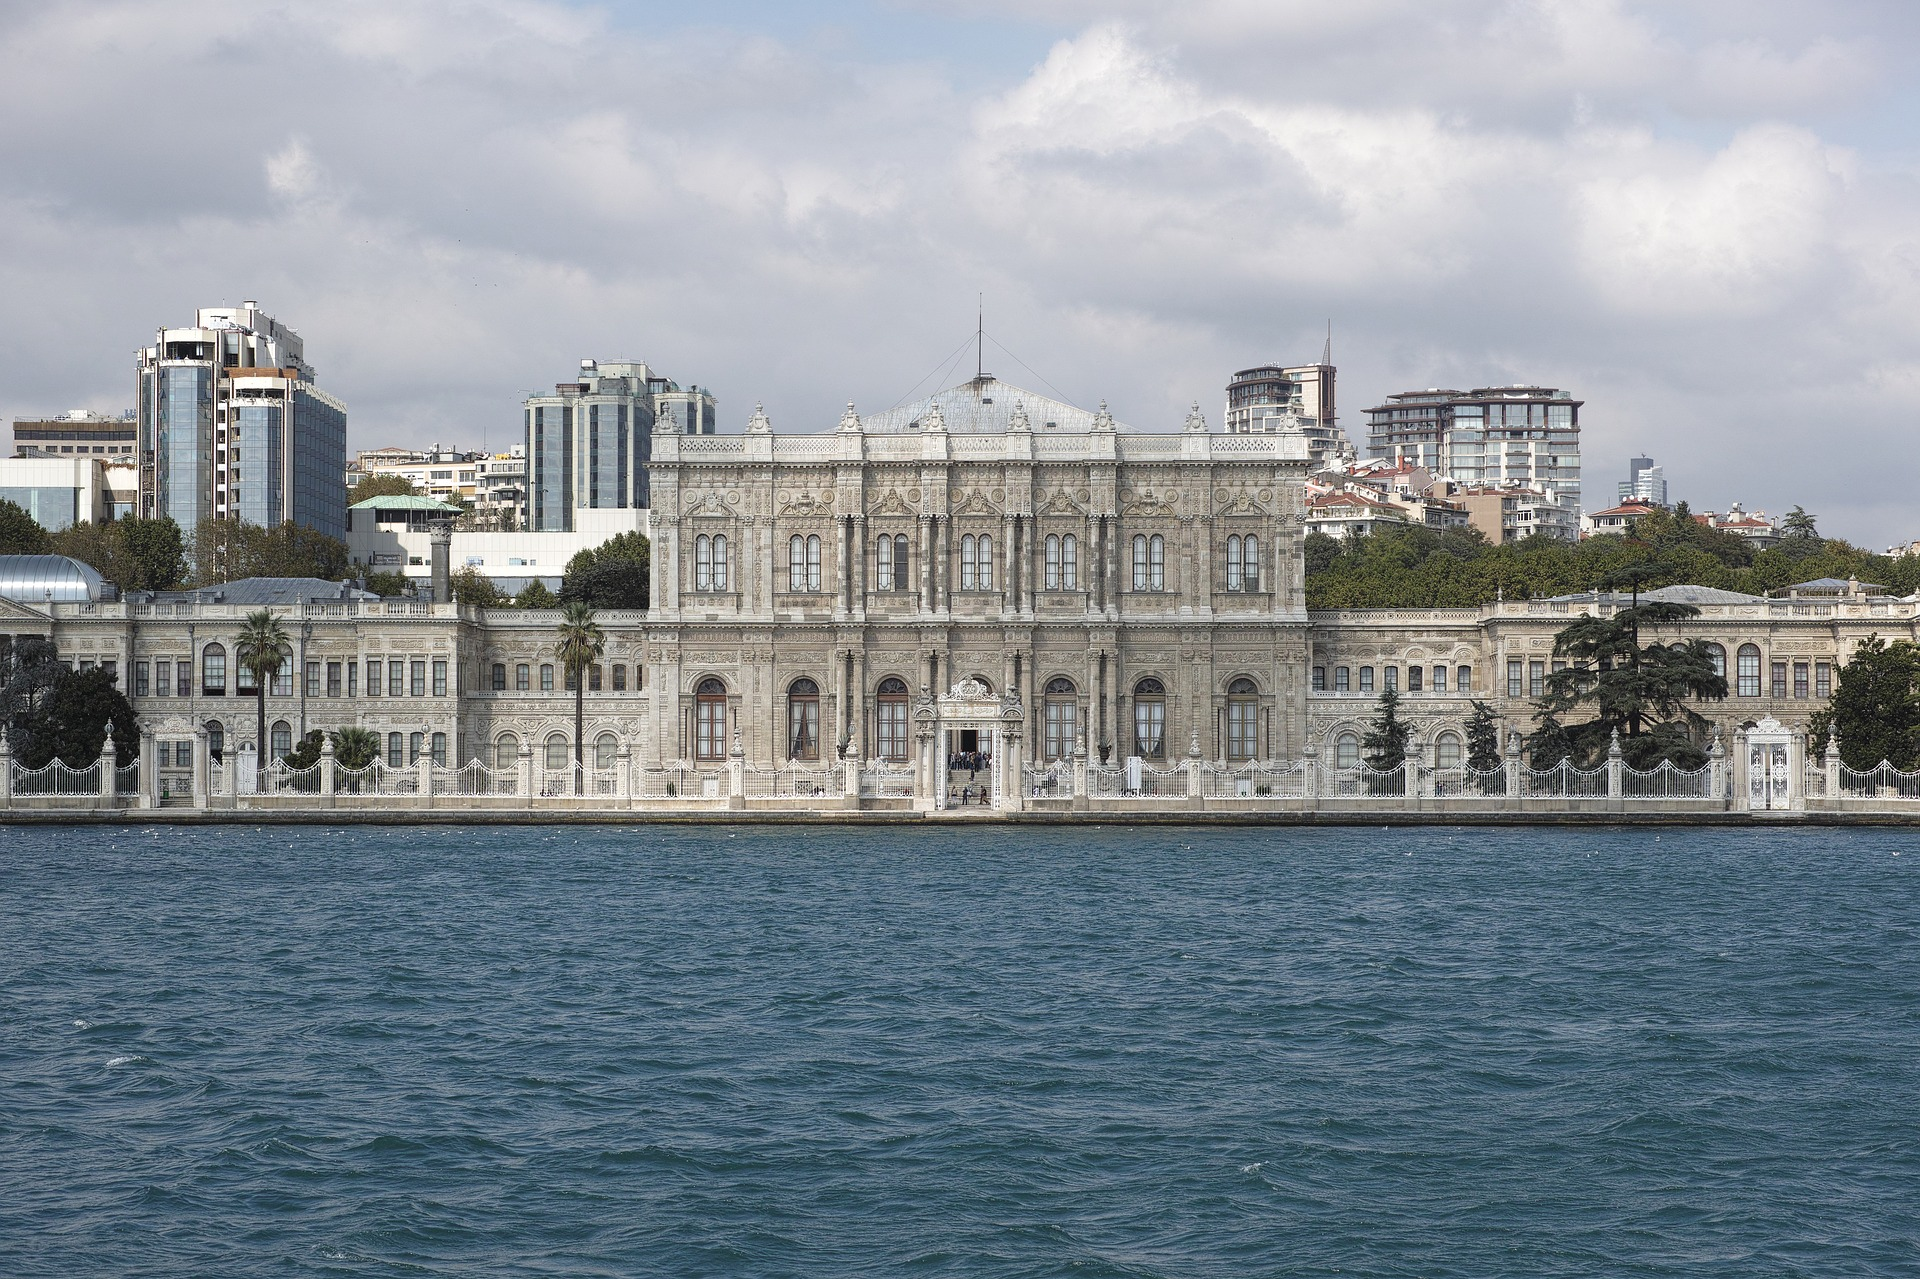 Istanbul Sehenswürdigkeiten: Dolmabahce-Palast